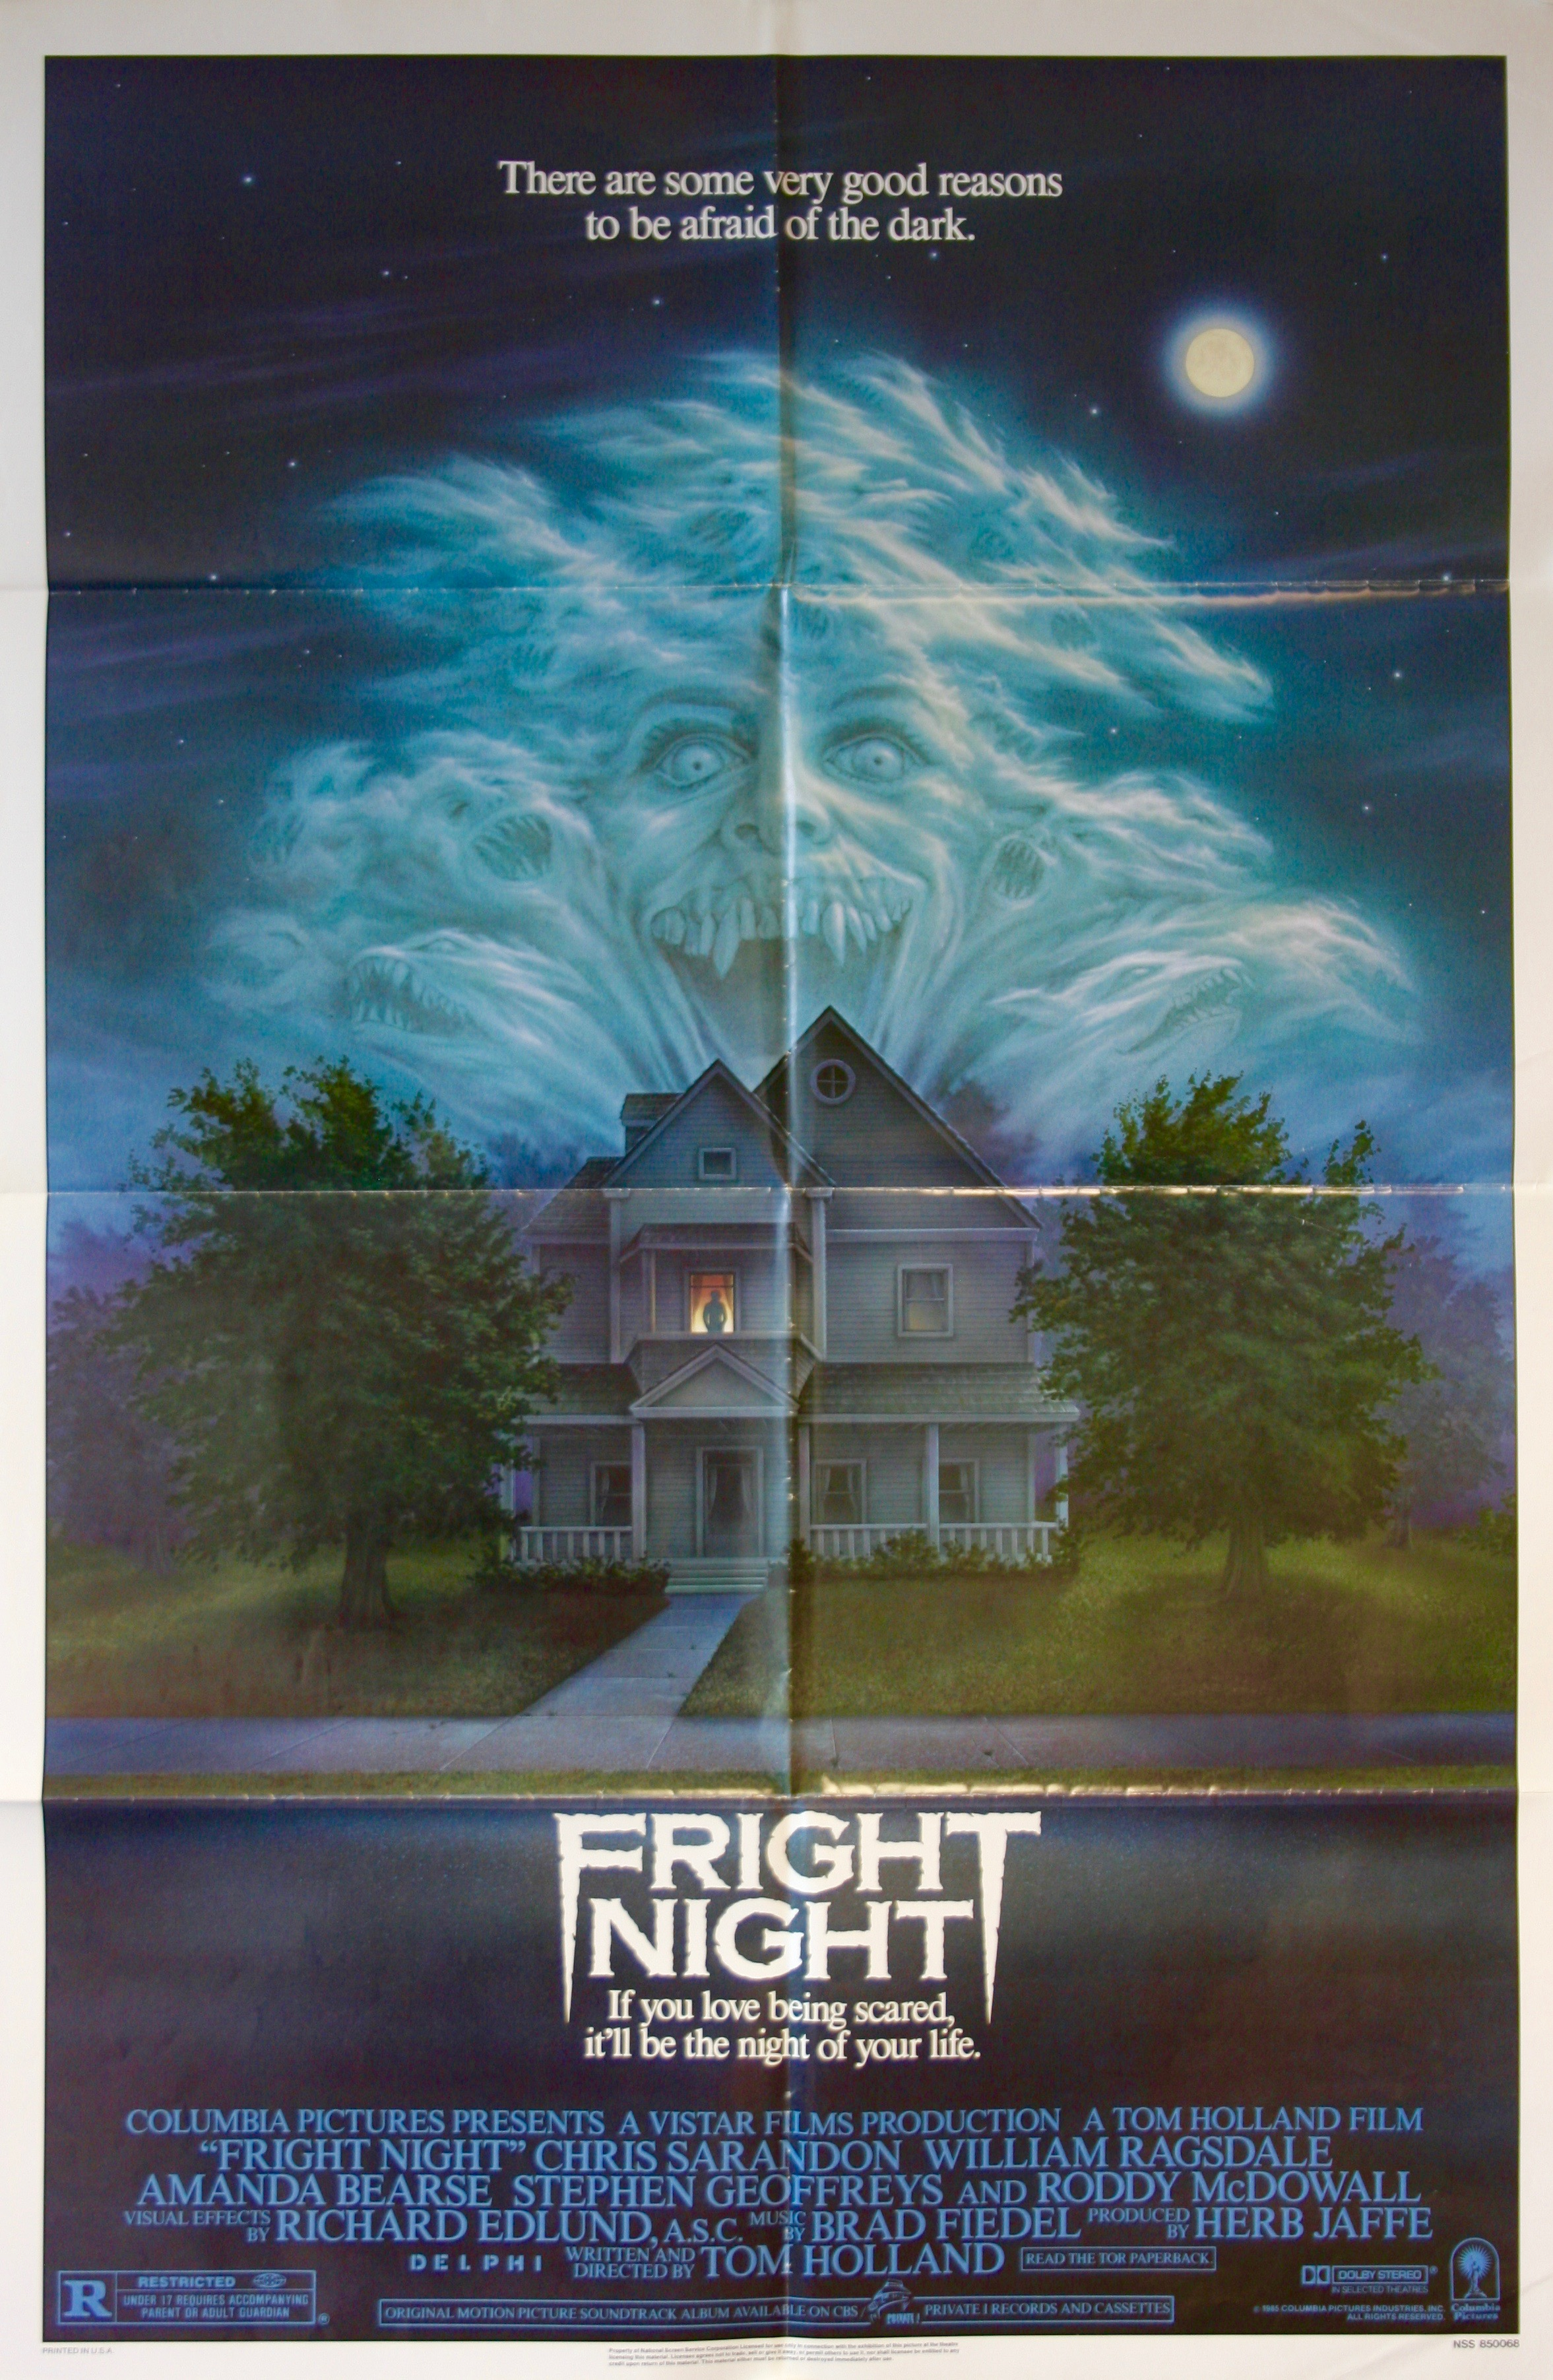 James Western Star >> Fright Night - Vintage Movie Posters